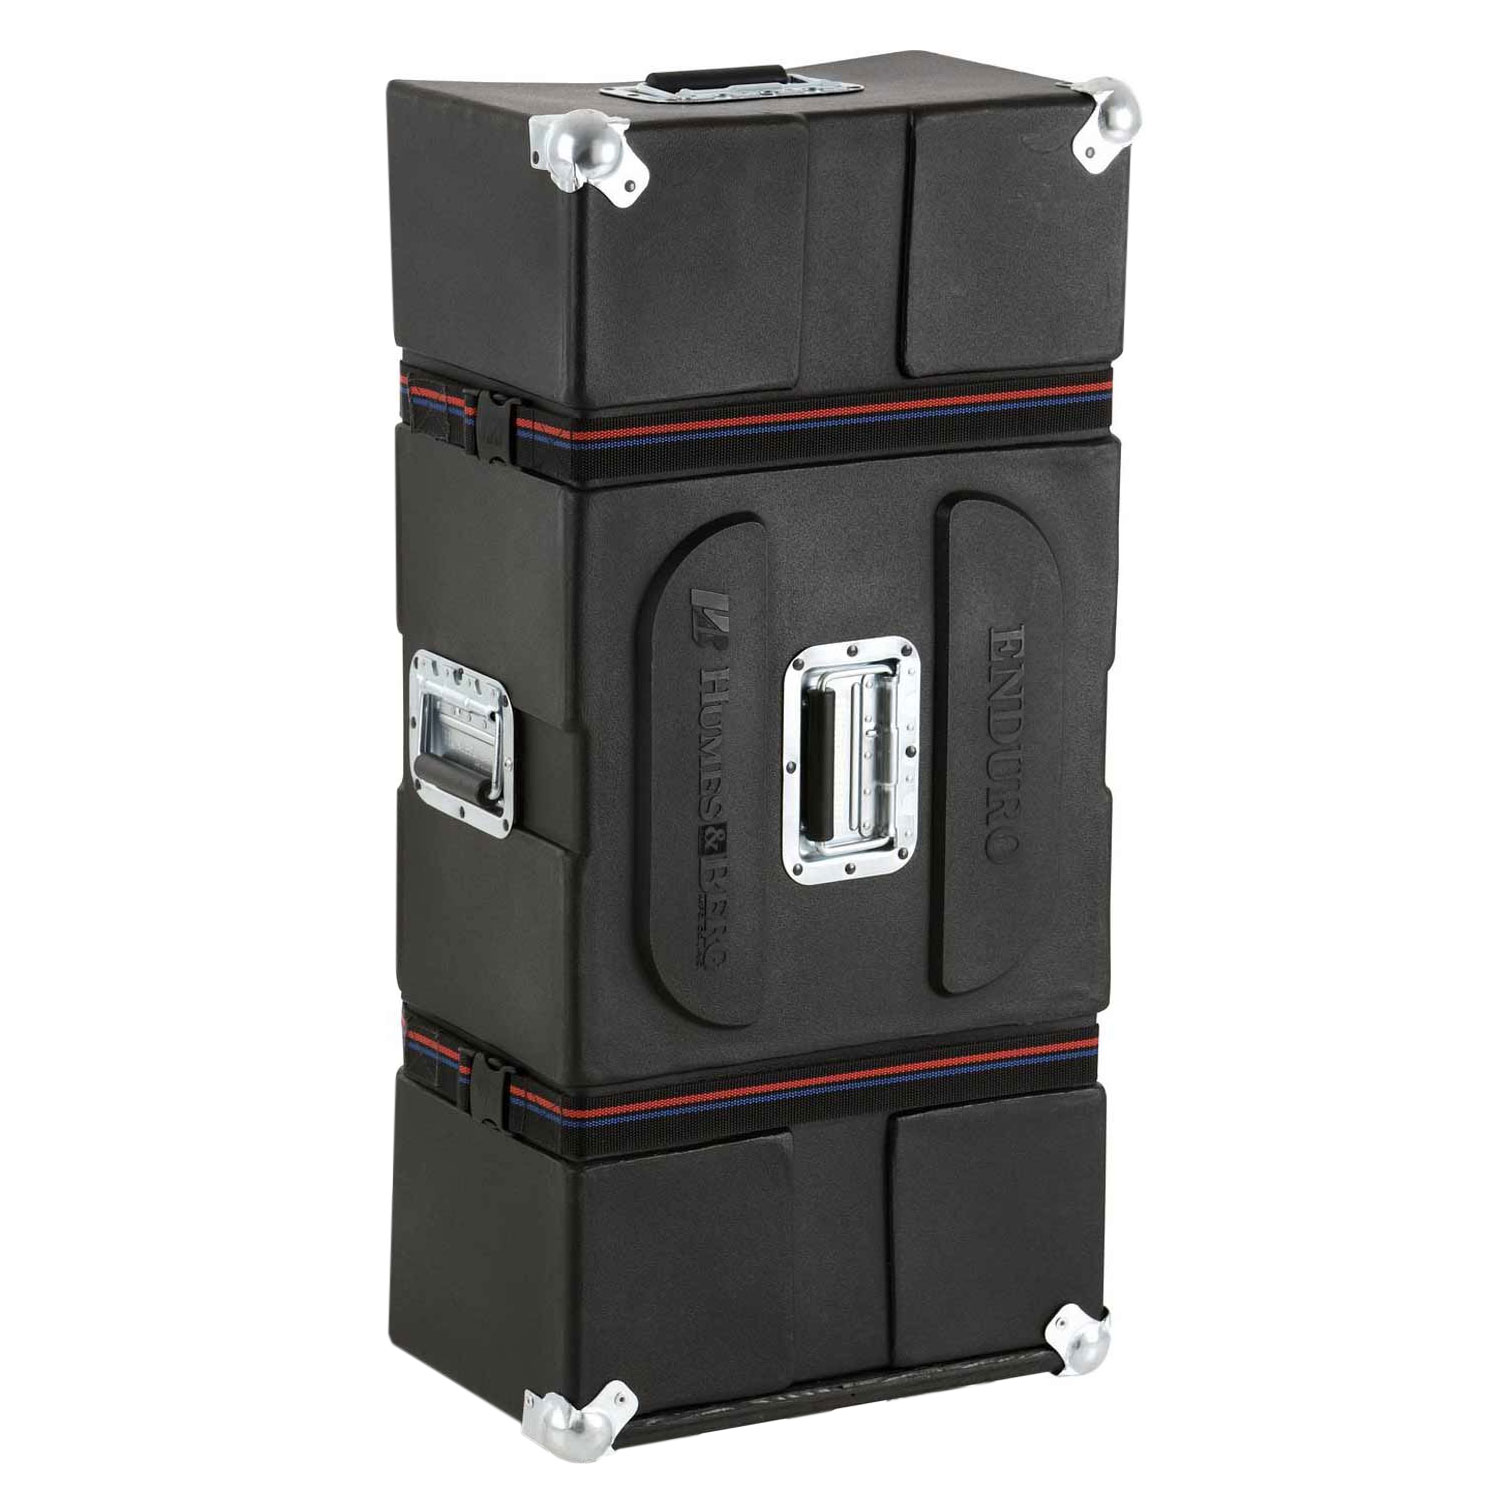 "Humes & Berg 30.5"" x 14.5"" x 12.5"" Enduro Foam-Lined Companion Hardware Case"